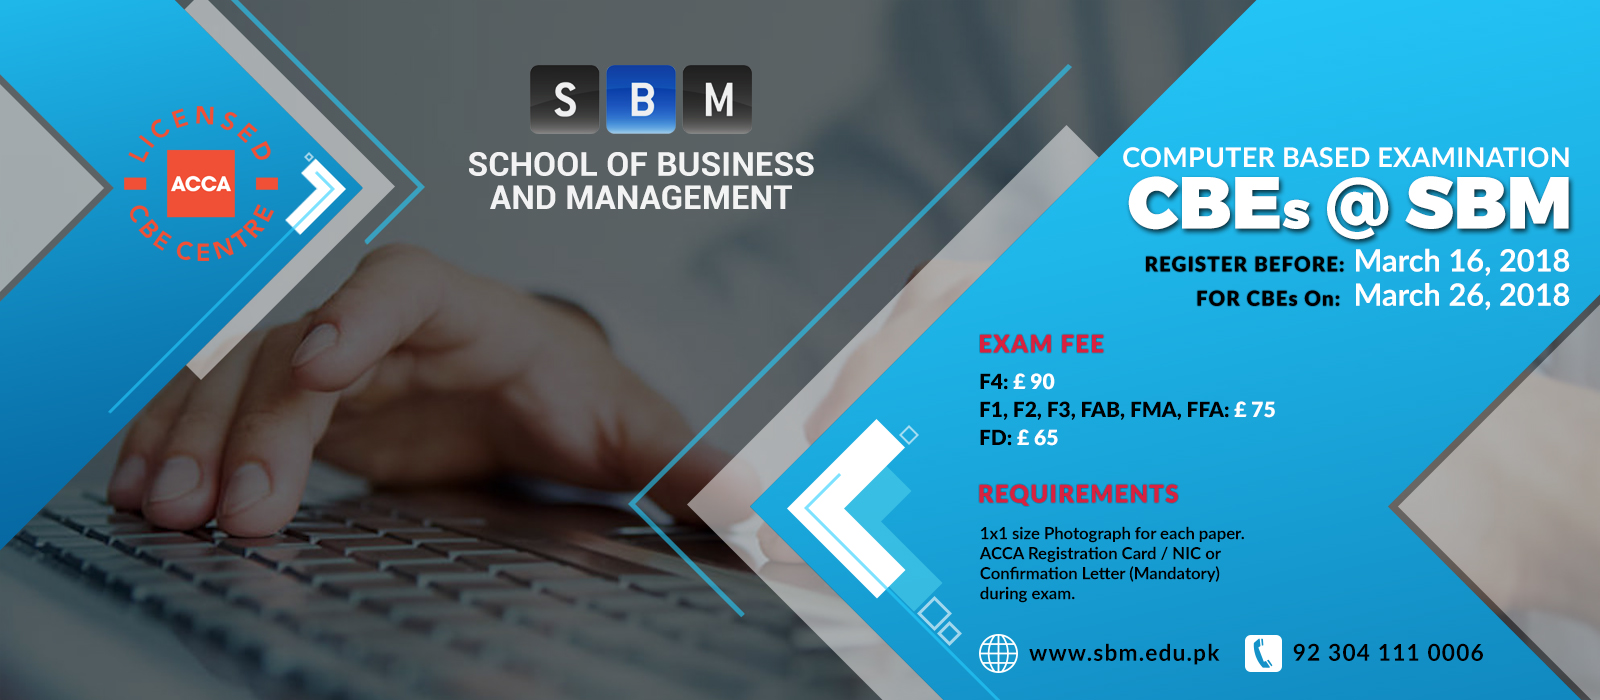 Register before 16 March for CBE exam on 26 March, 2018